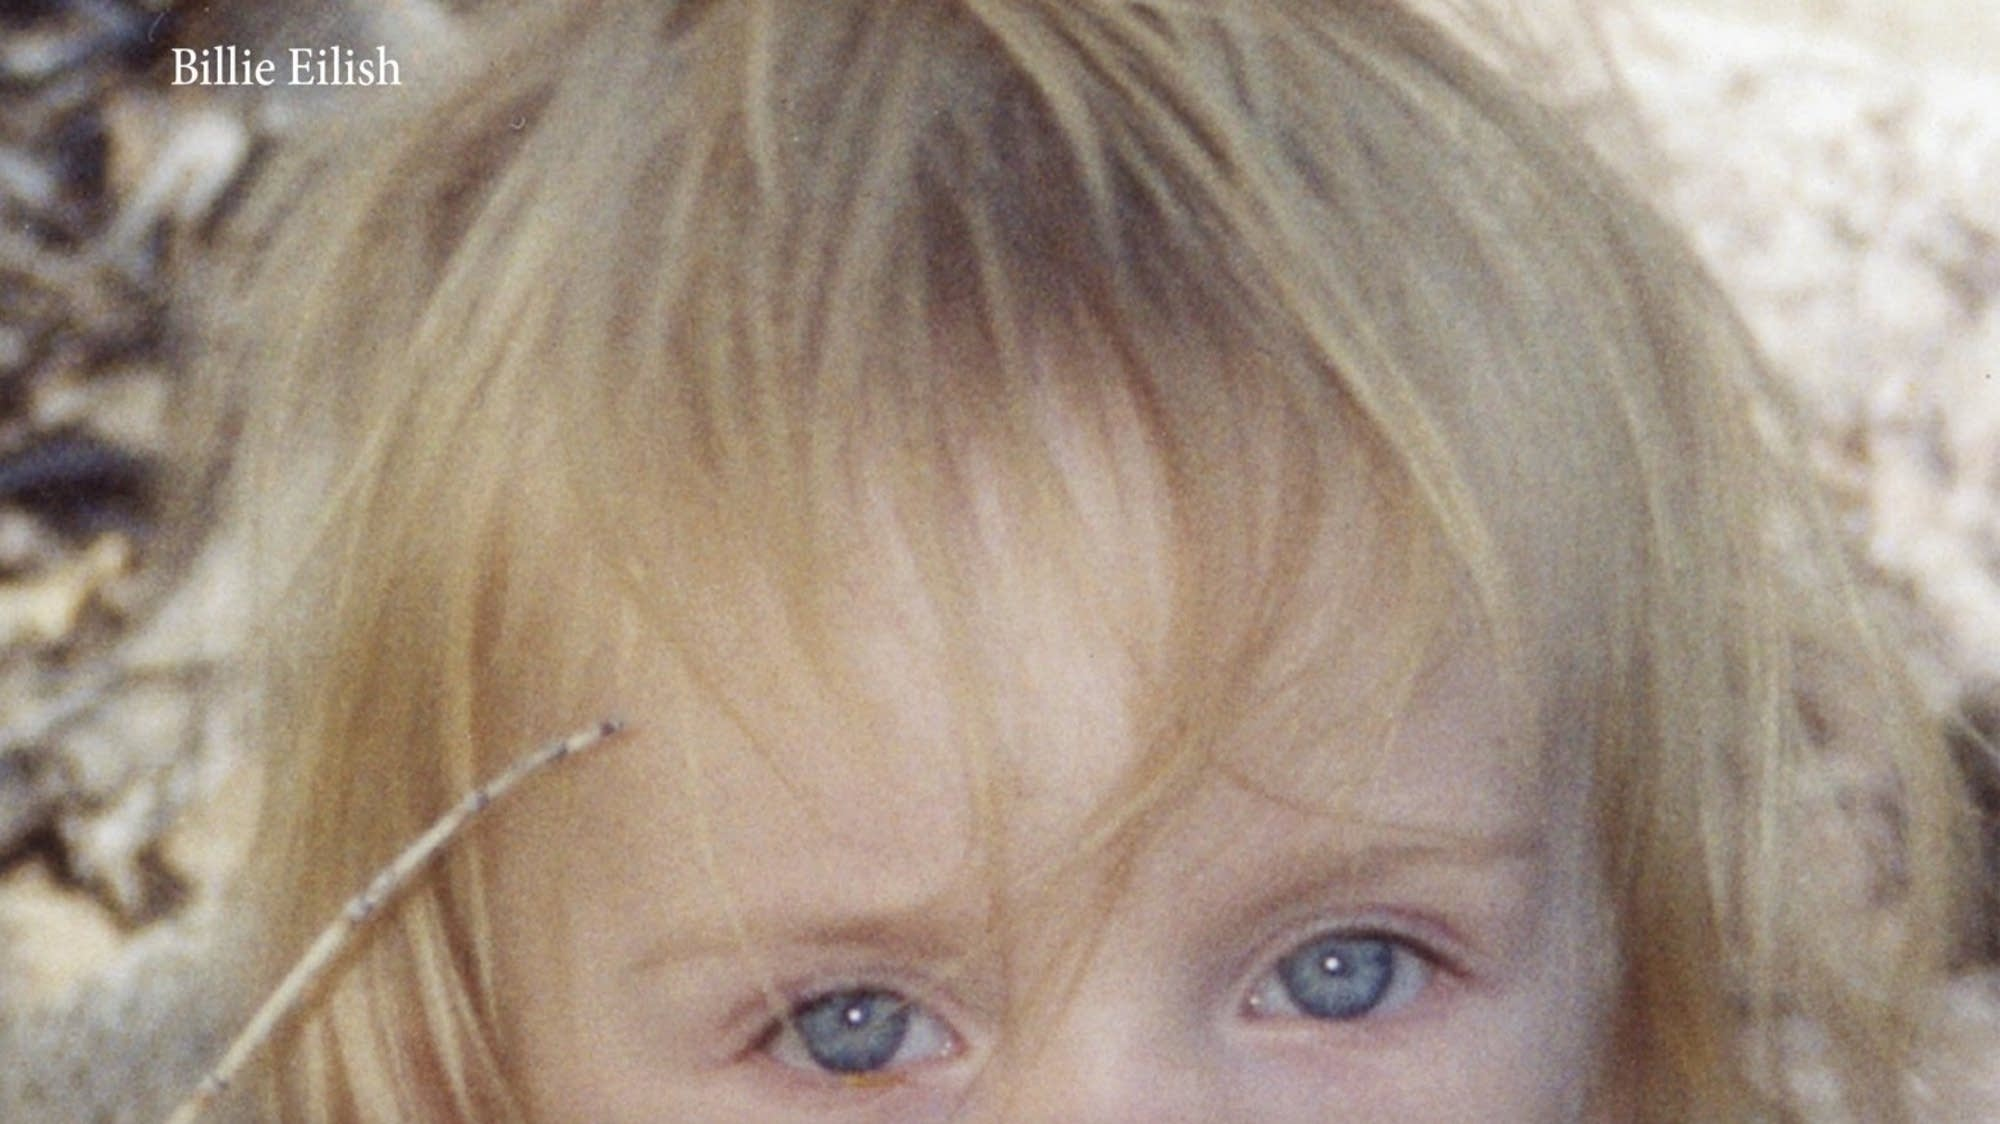 Billie Eilish book cover featuring the artist's eyes as a child.